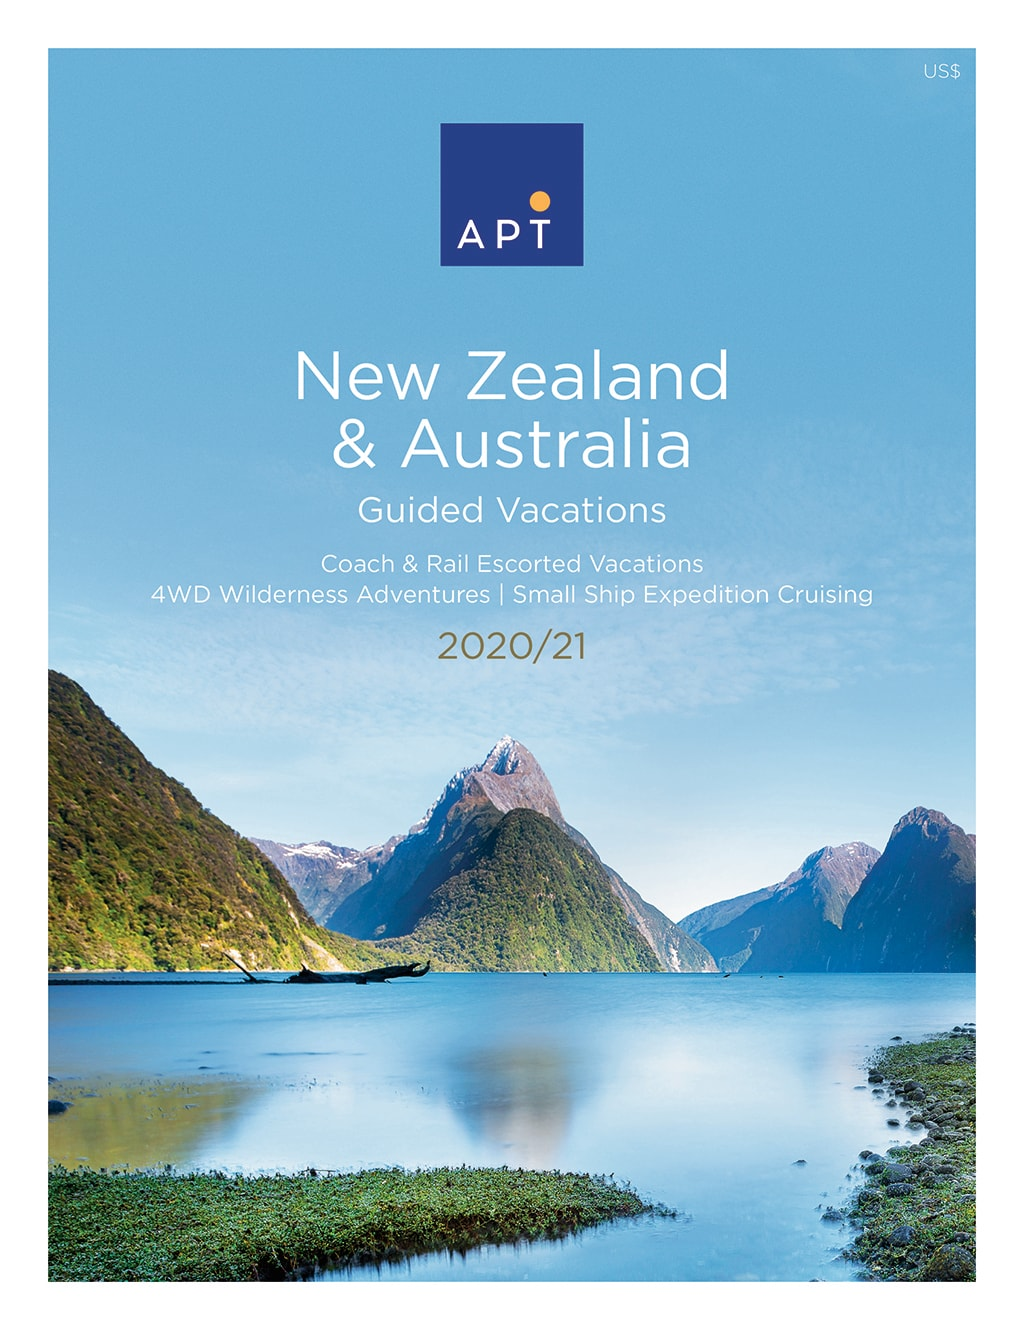 APT USA Australia & New Zealand Brochure Thumbnail